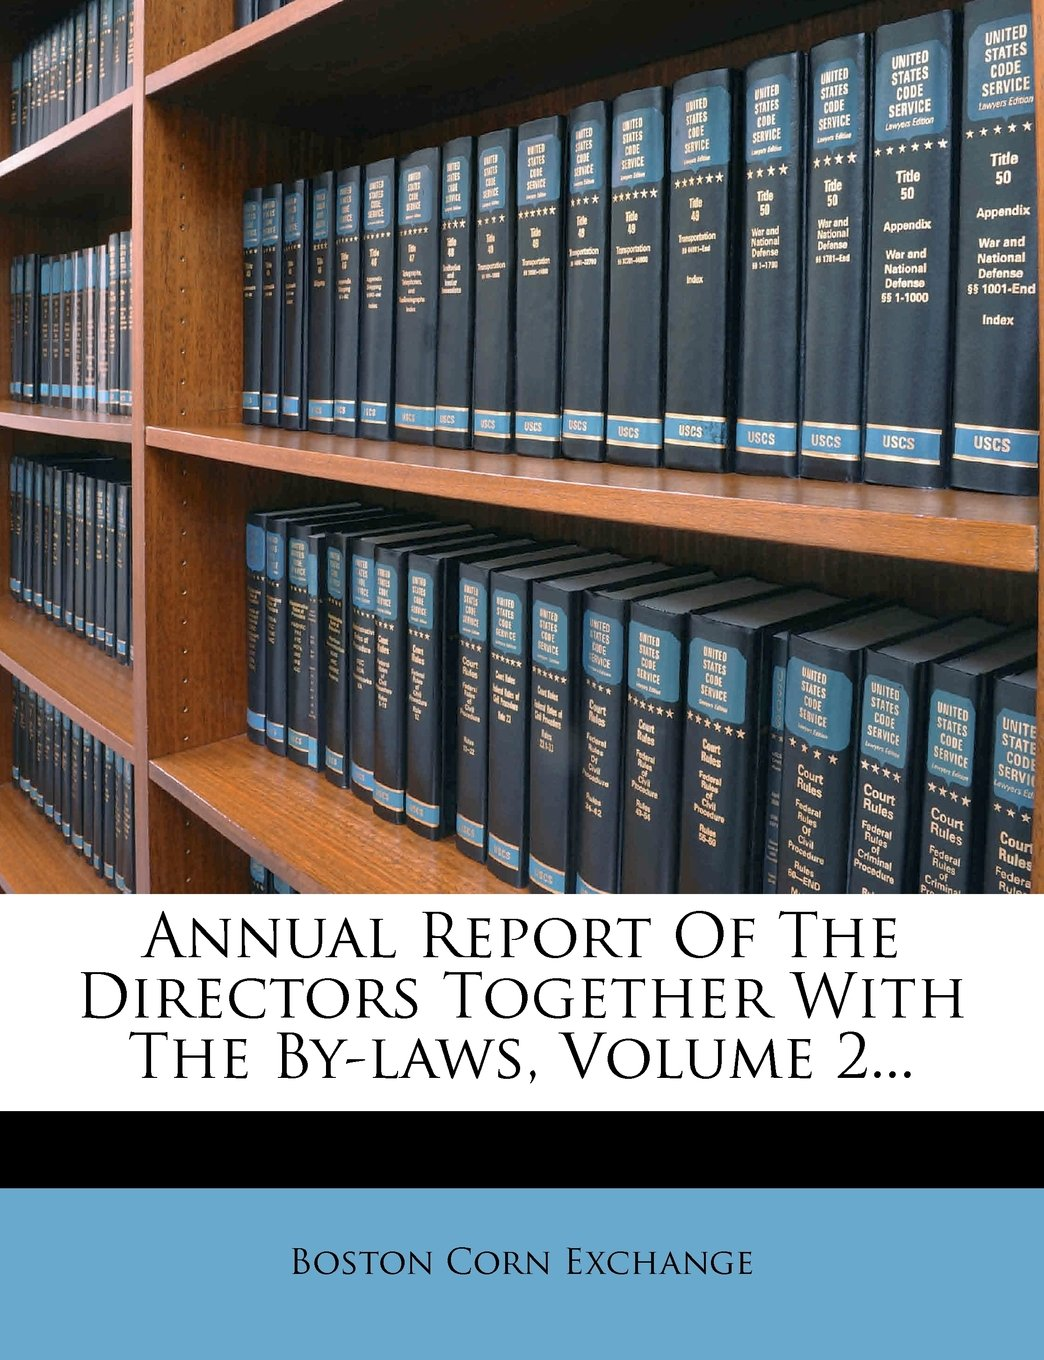 Annual Report Of The Directors Together With The By-laws, Volume 2... pdf